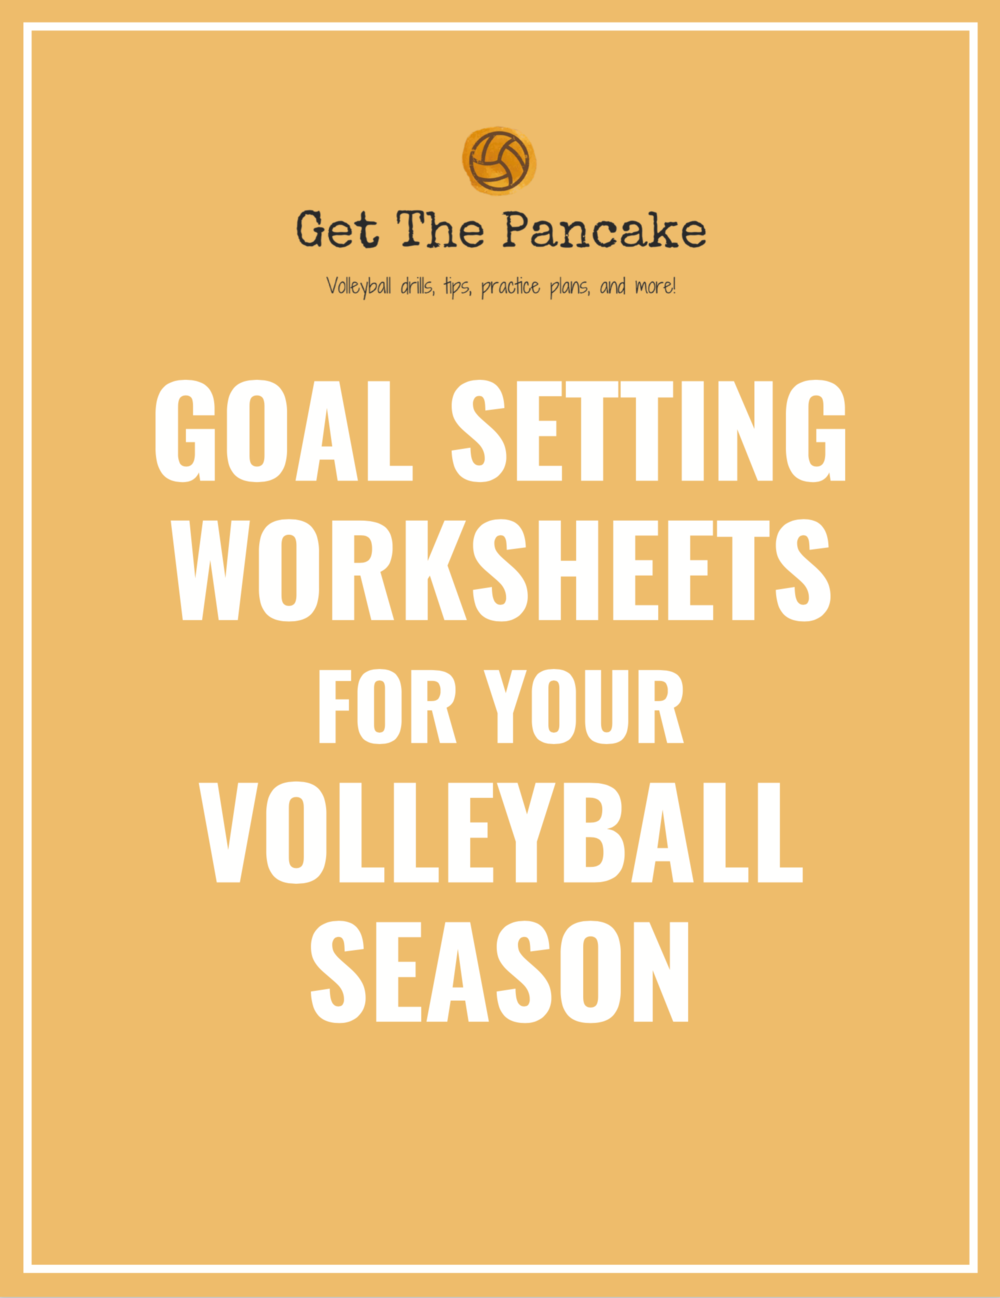 Need goal setting worksheets for your volleyball team? - Buy once, print for your whole program!